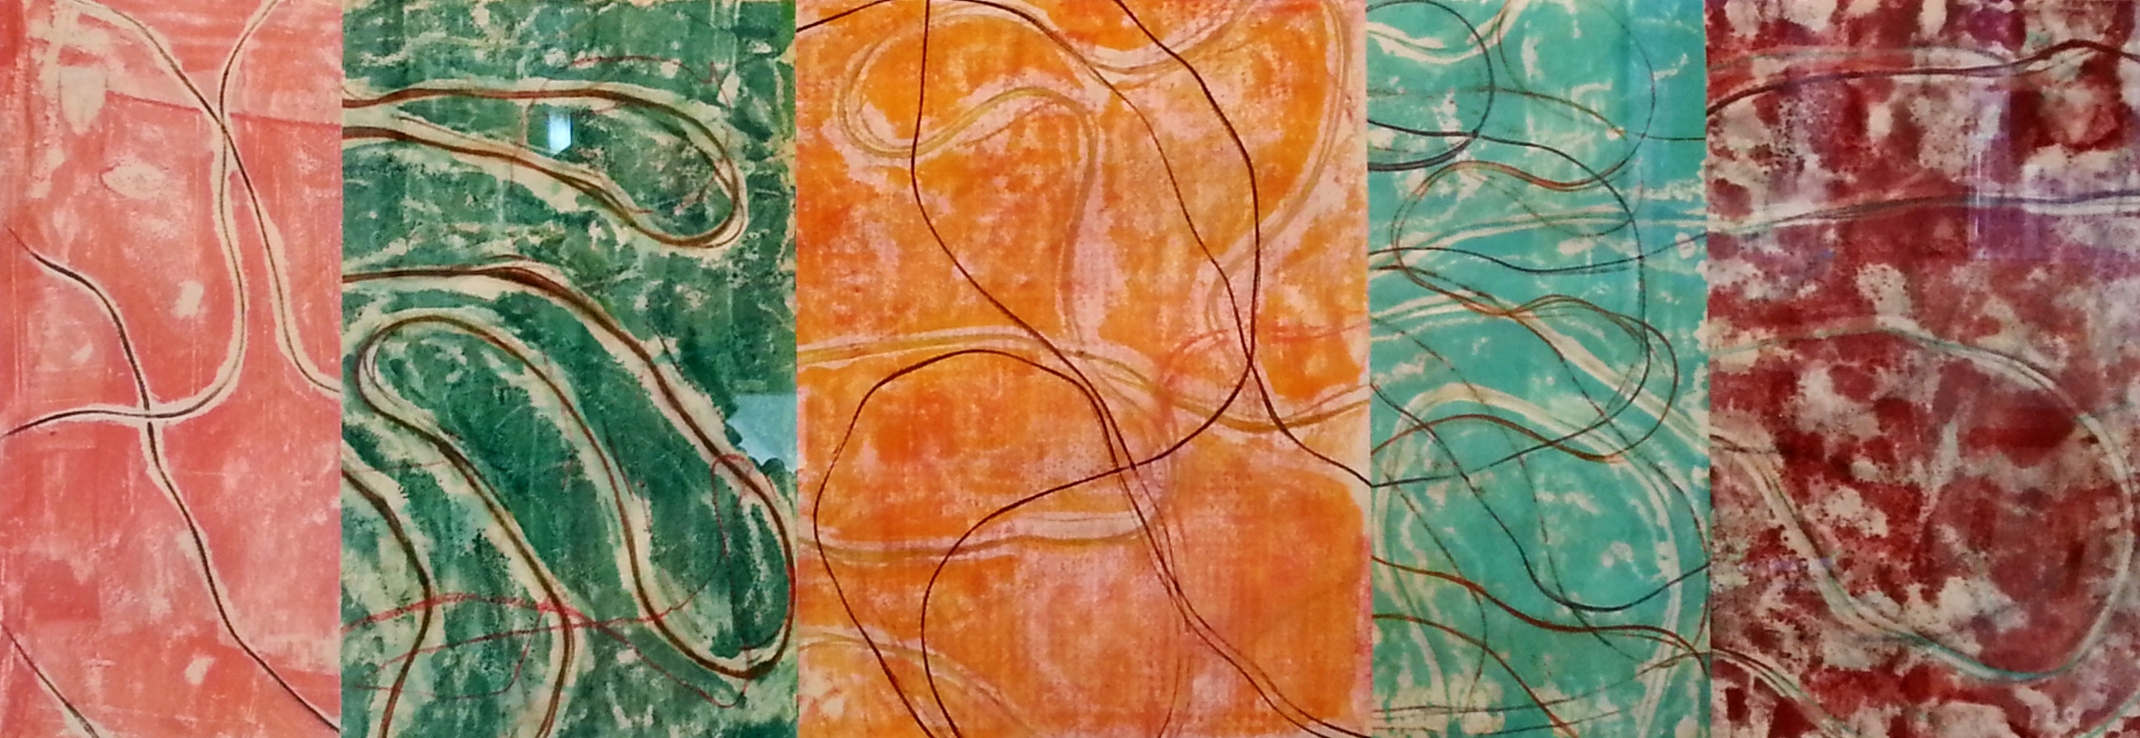 Line Work Sequence #1, 2016, Encaustic monotypes on various papers, 10 x 28.5""